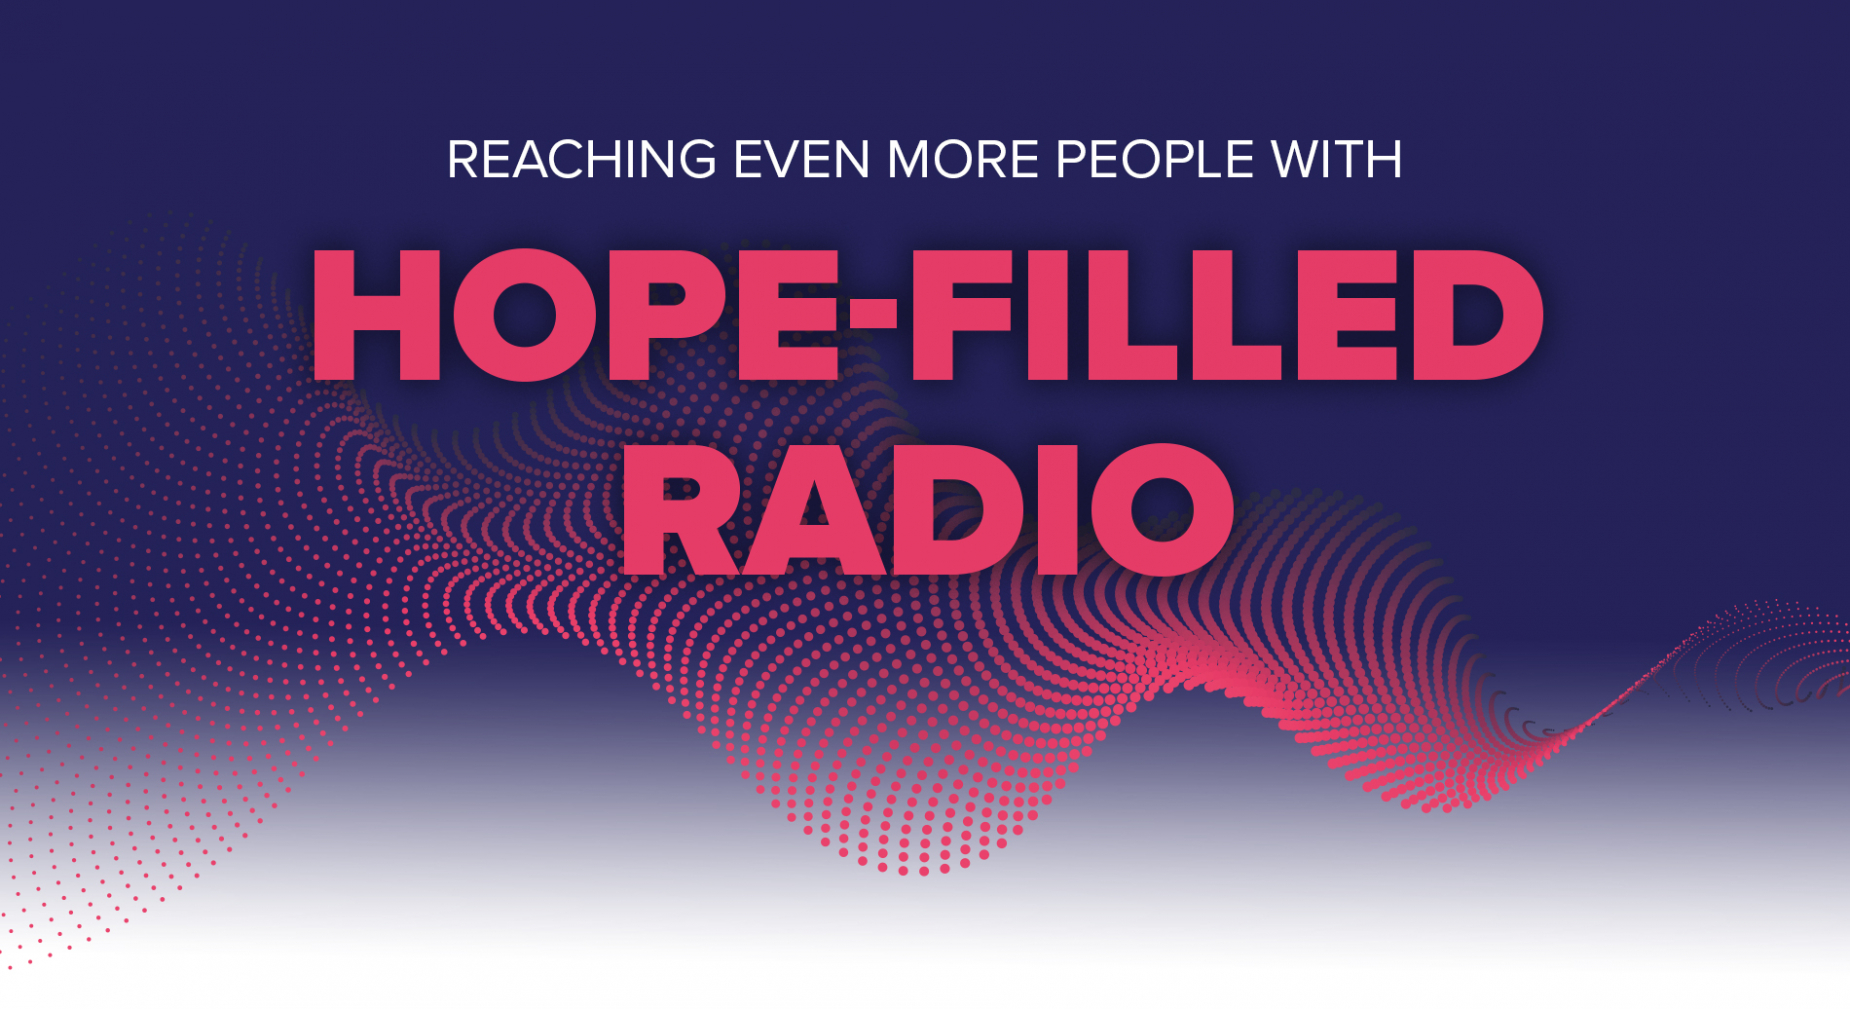 REACHING EVEN MORE PEOPLE WITH HOPE-FILLED RADIO